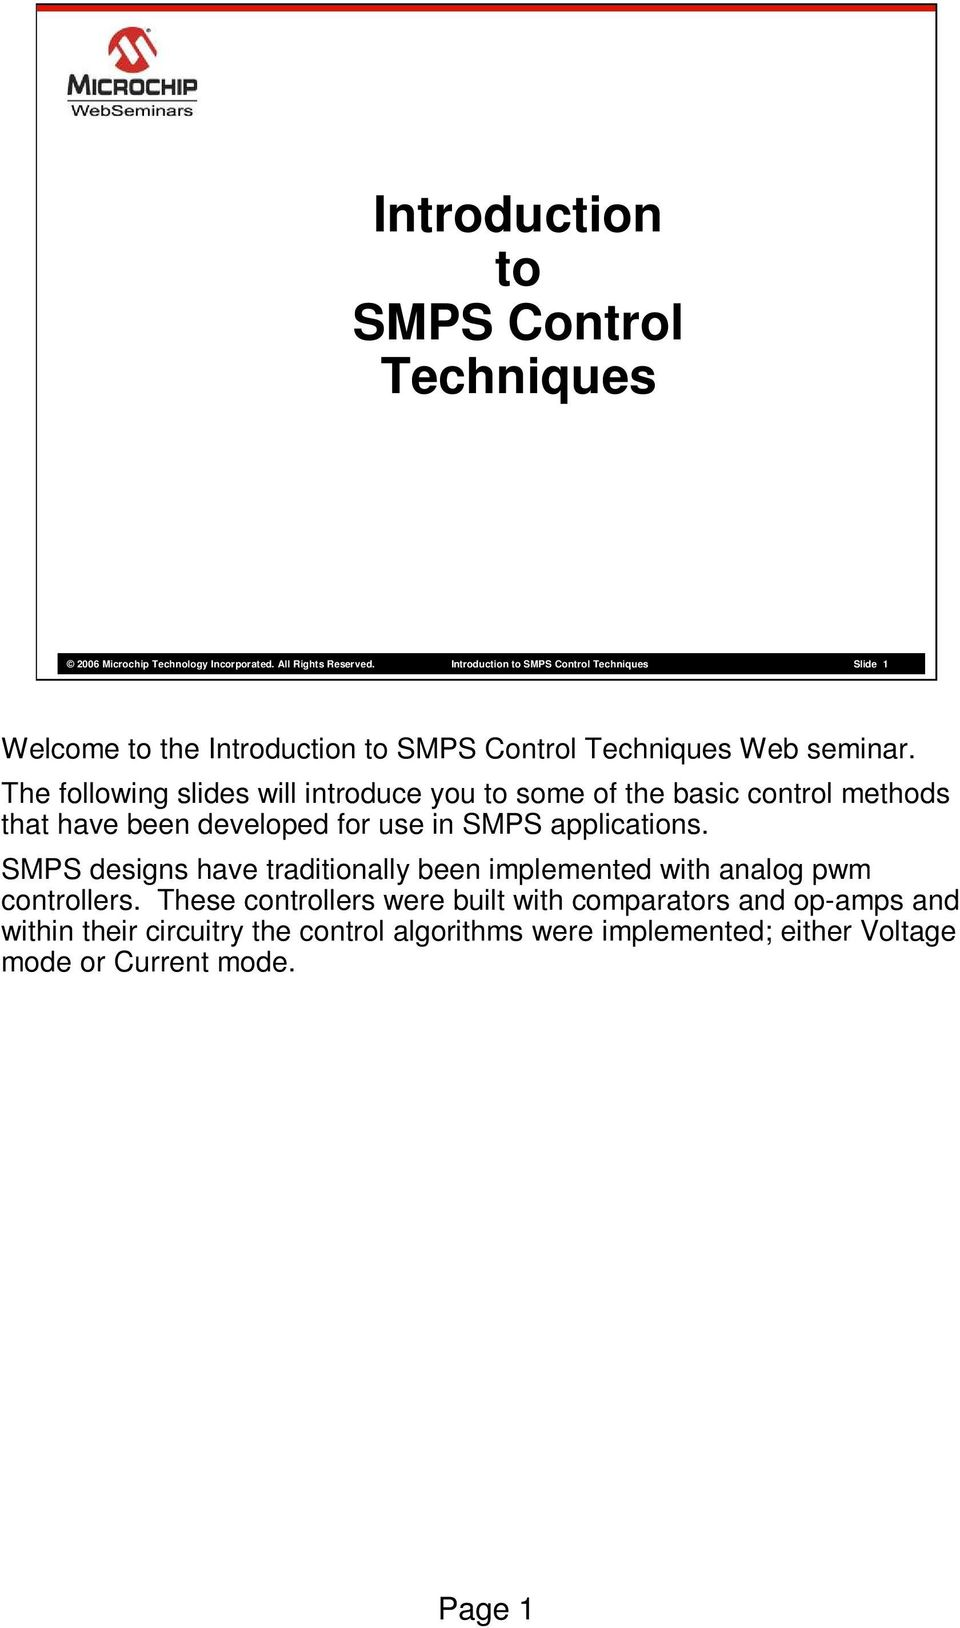 Introduction to SMPS Control Techniques - PDF